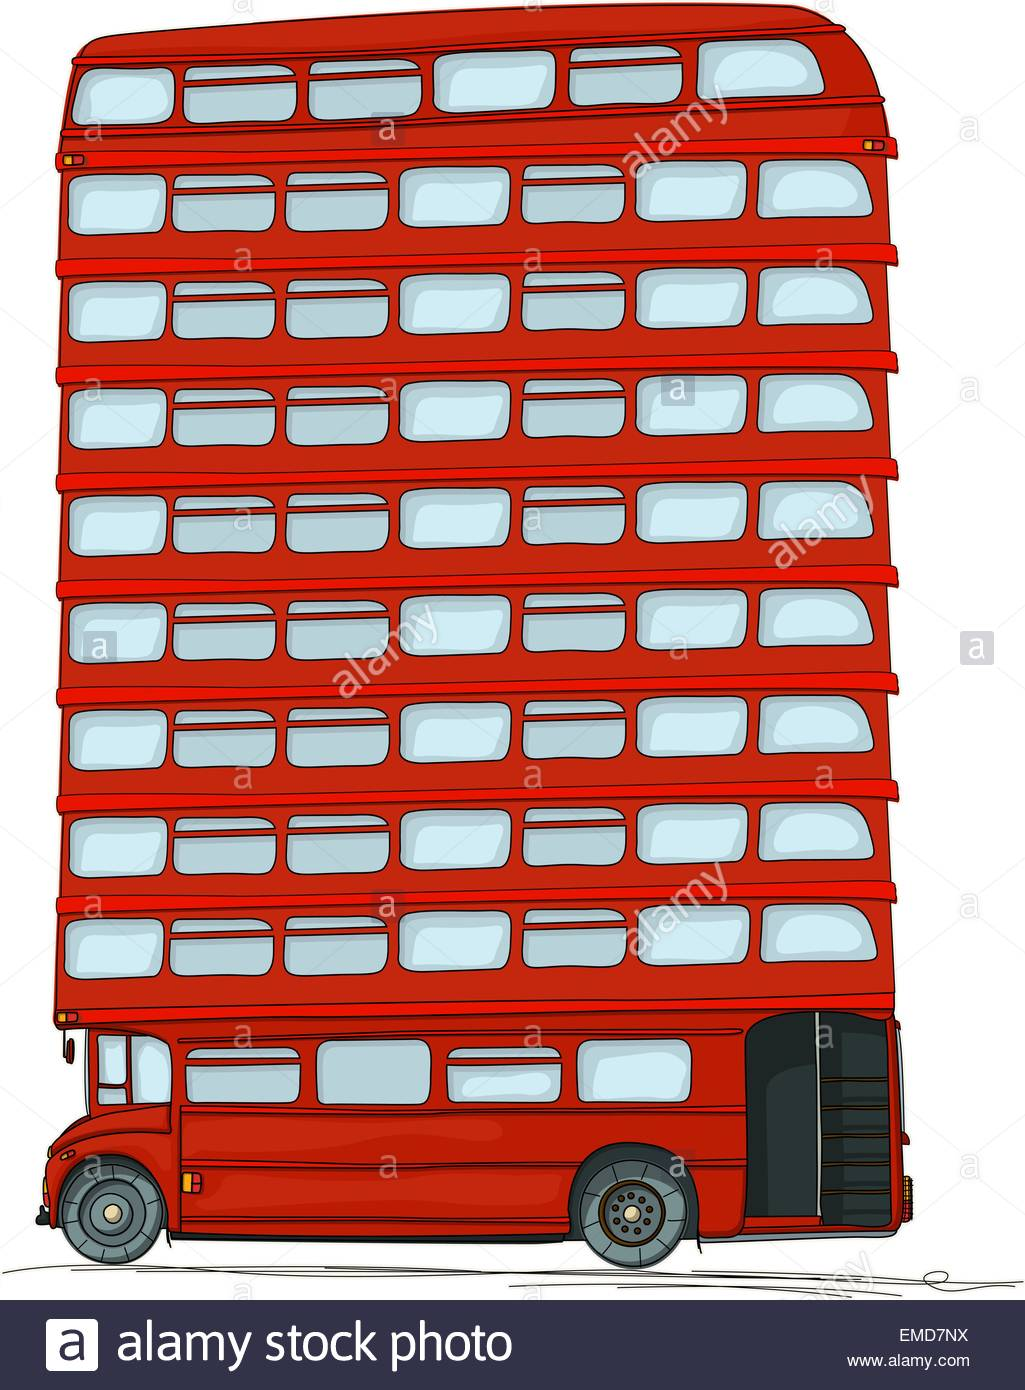 English bus - Stock Image